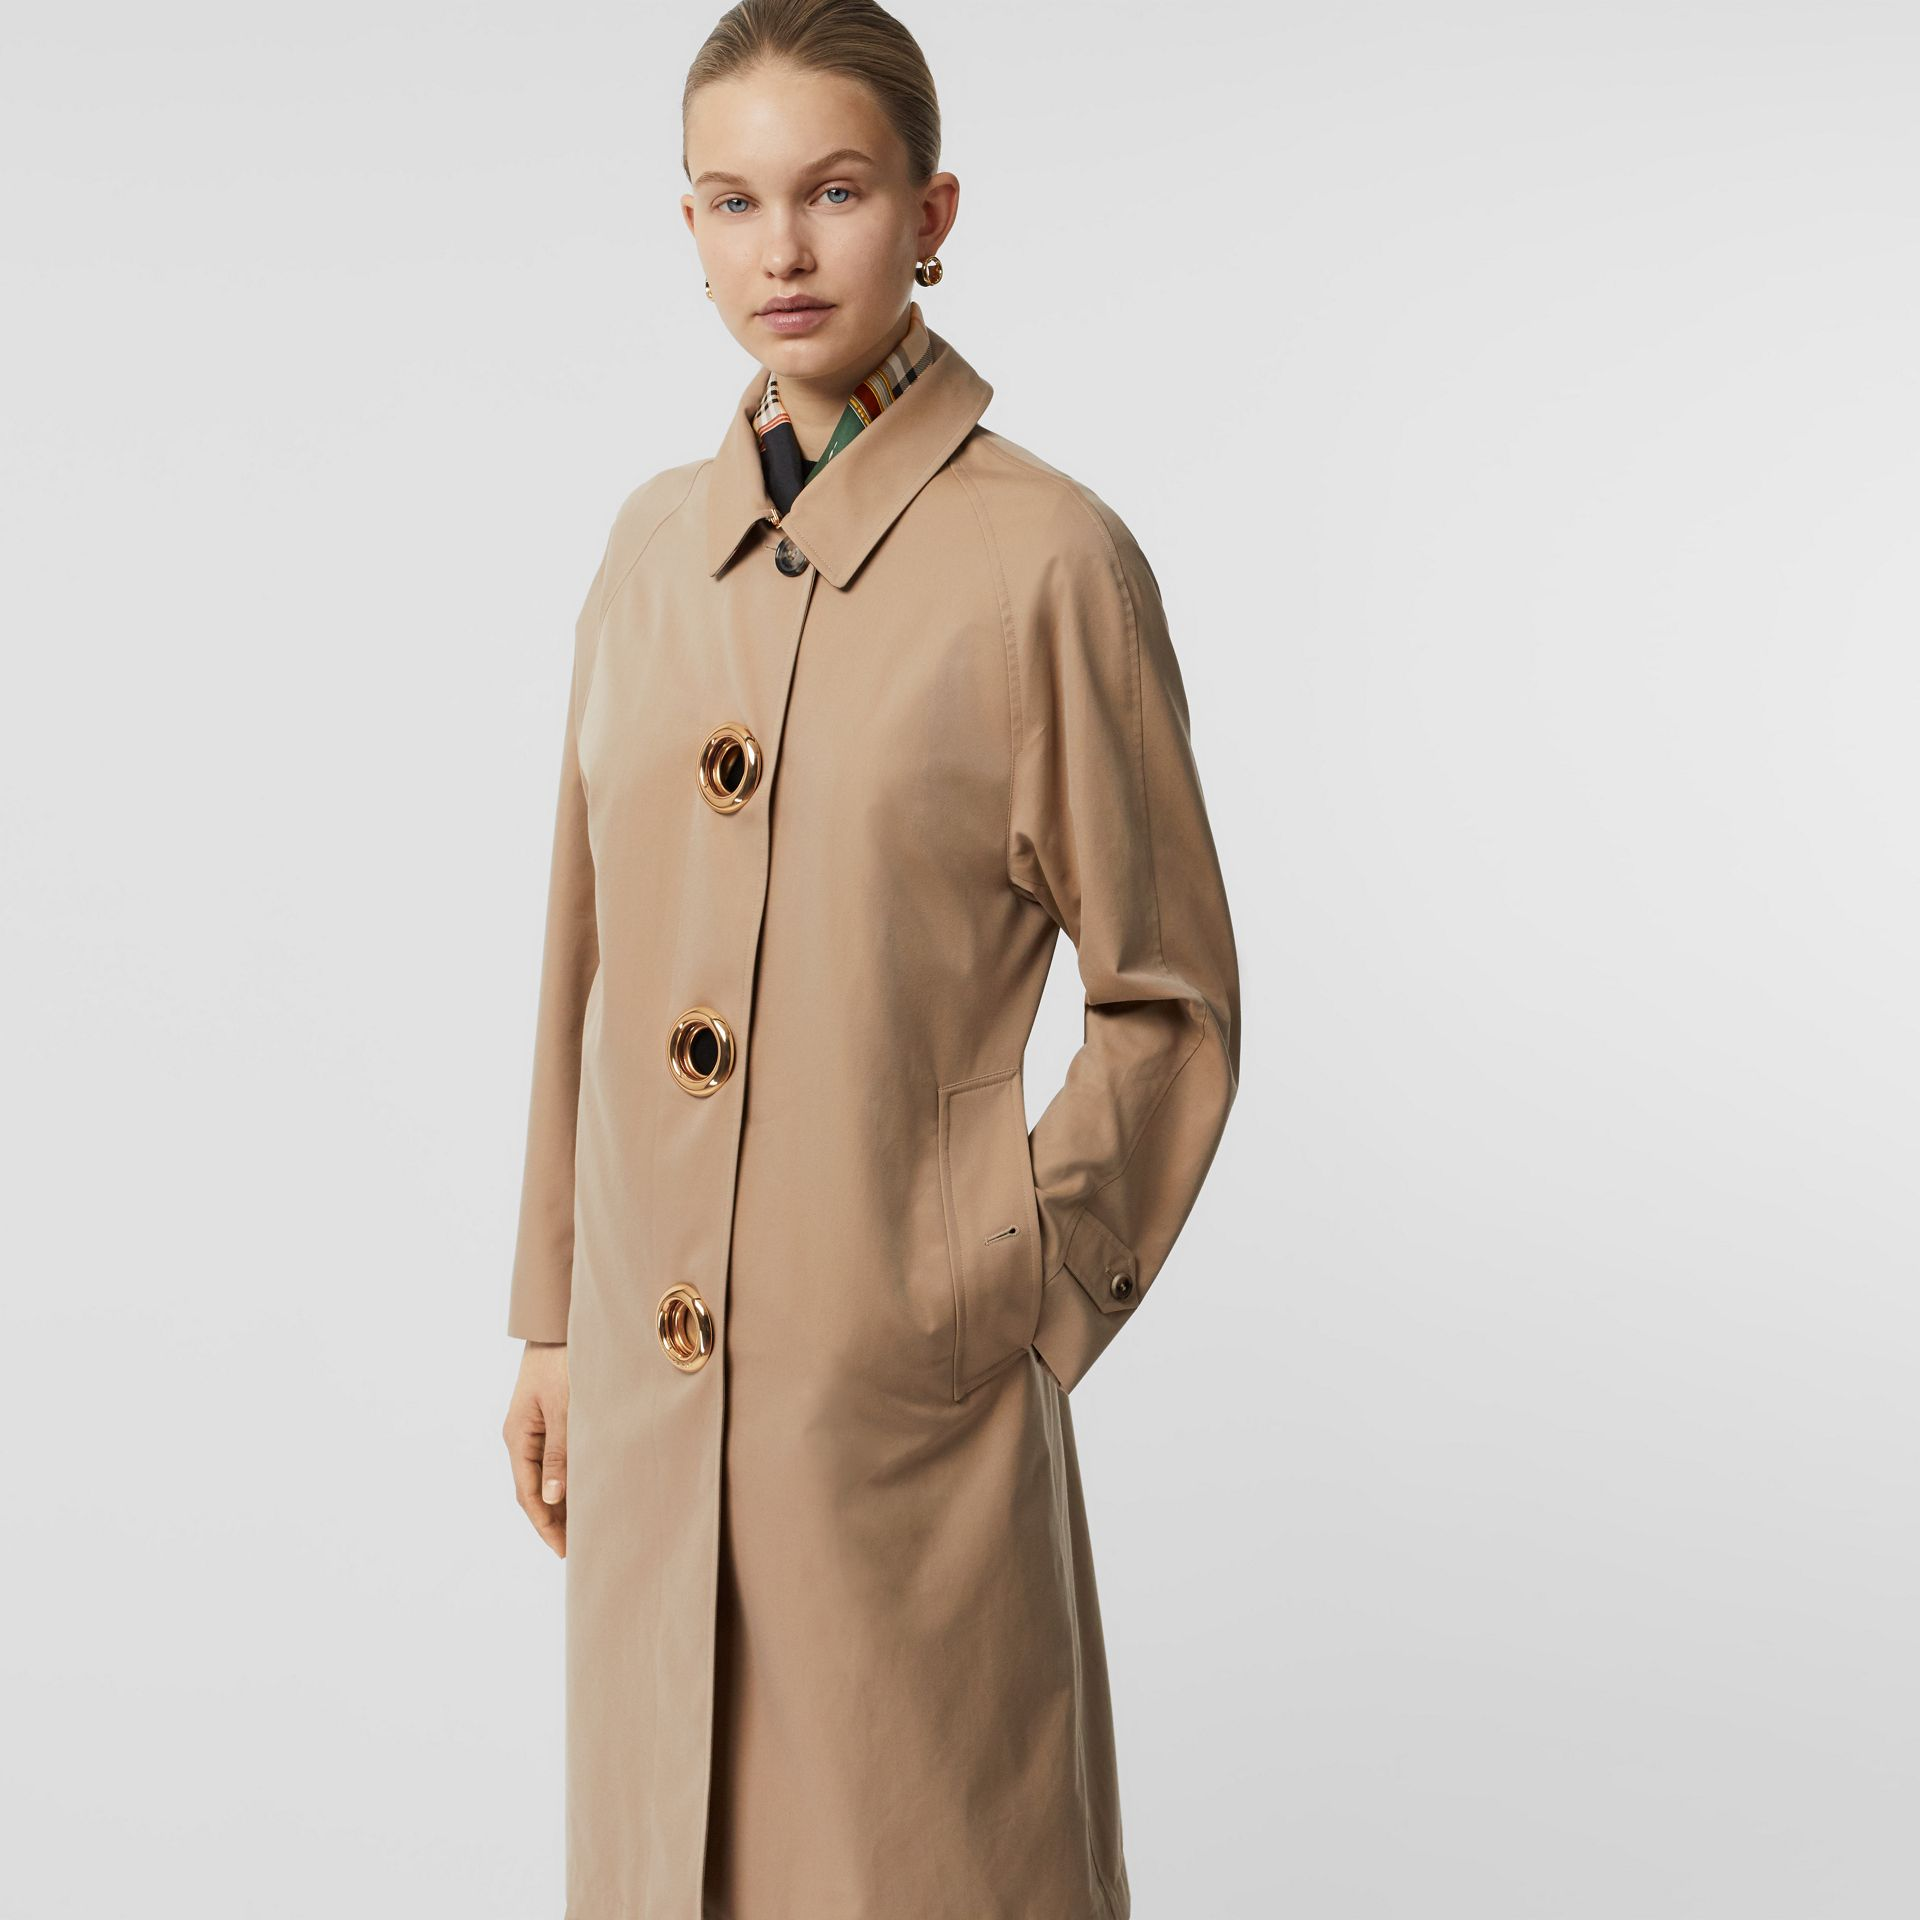 Grommet Detail Cotton Gabardine Car Coat in Honey - Women | Burberry - gallery image 6